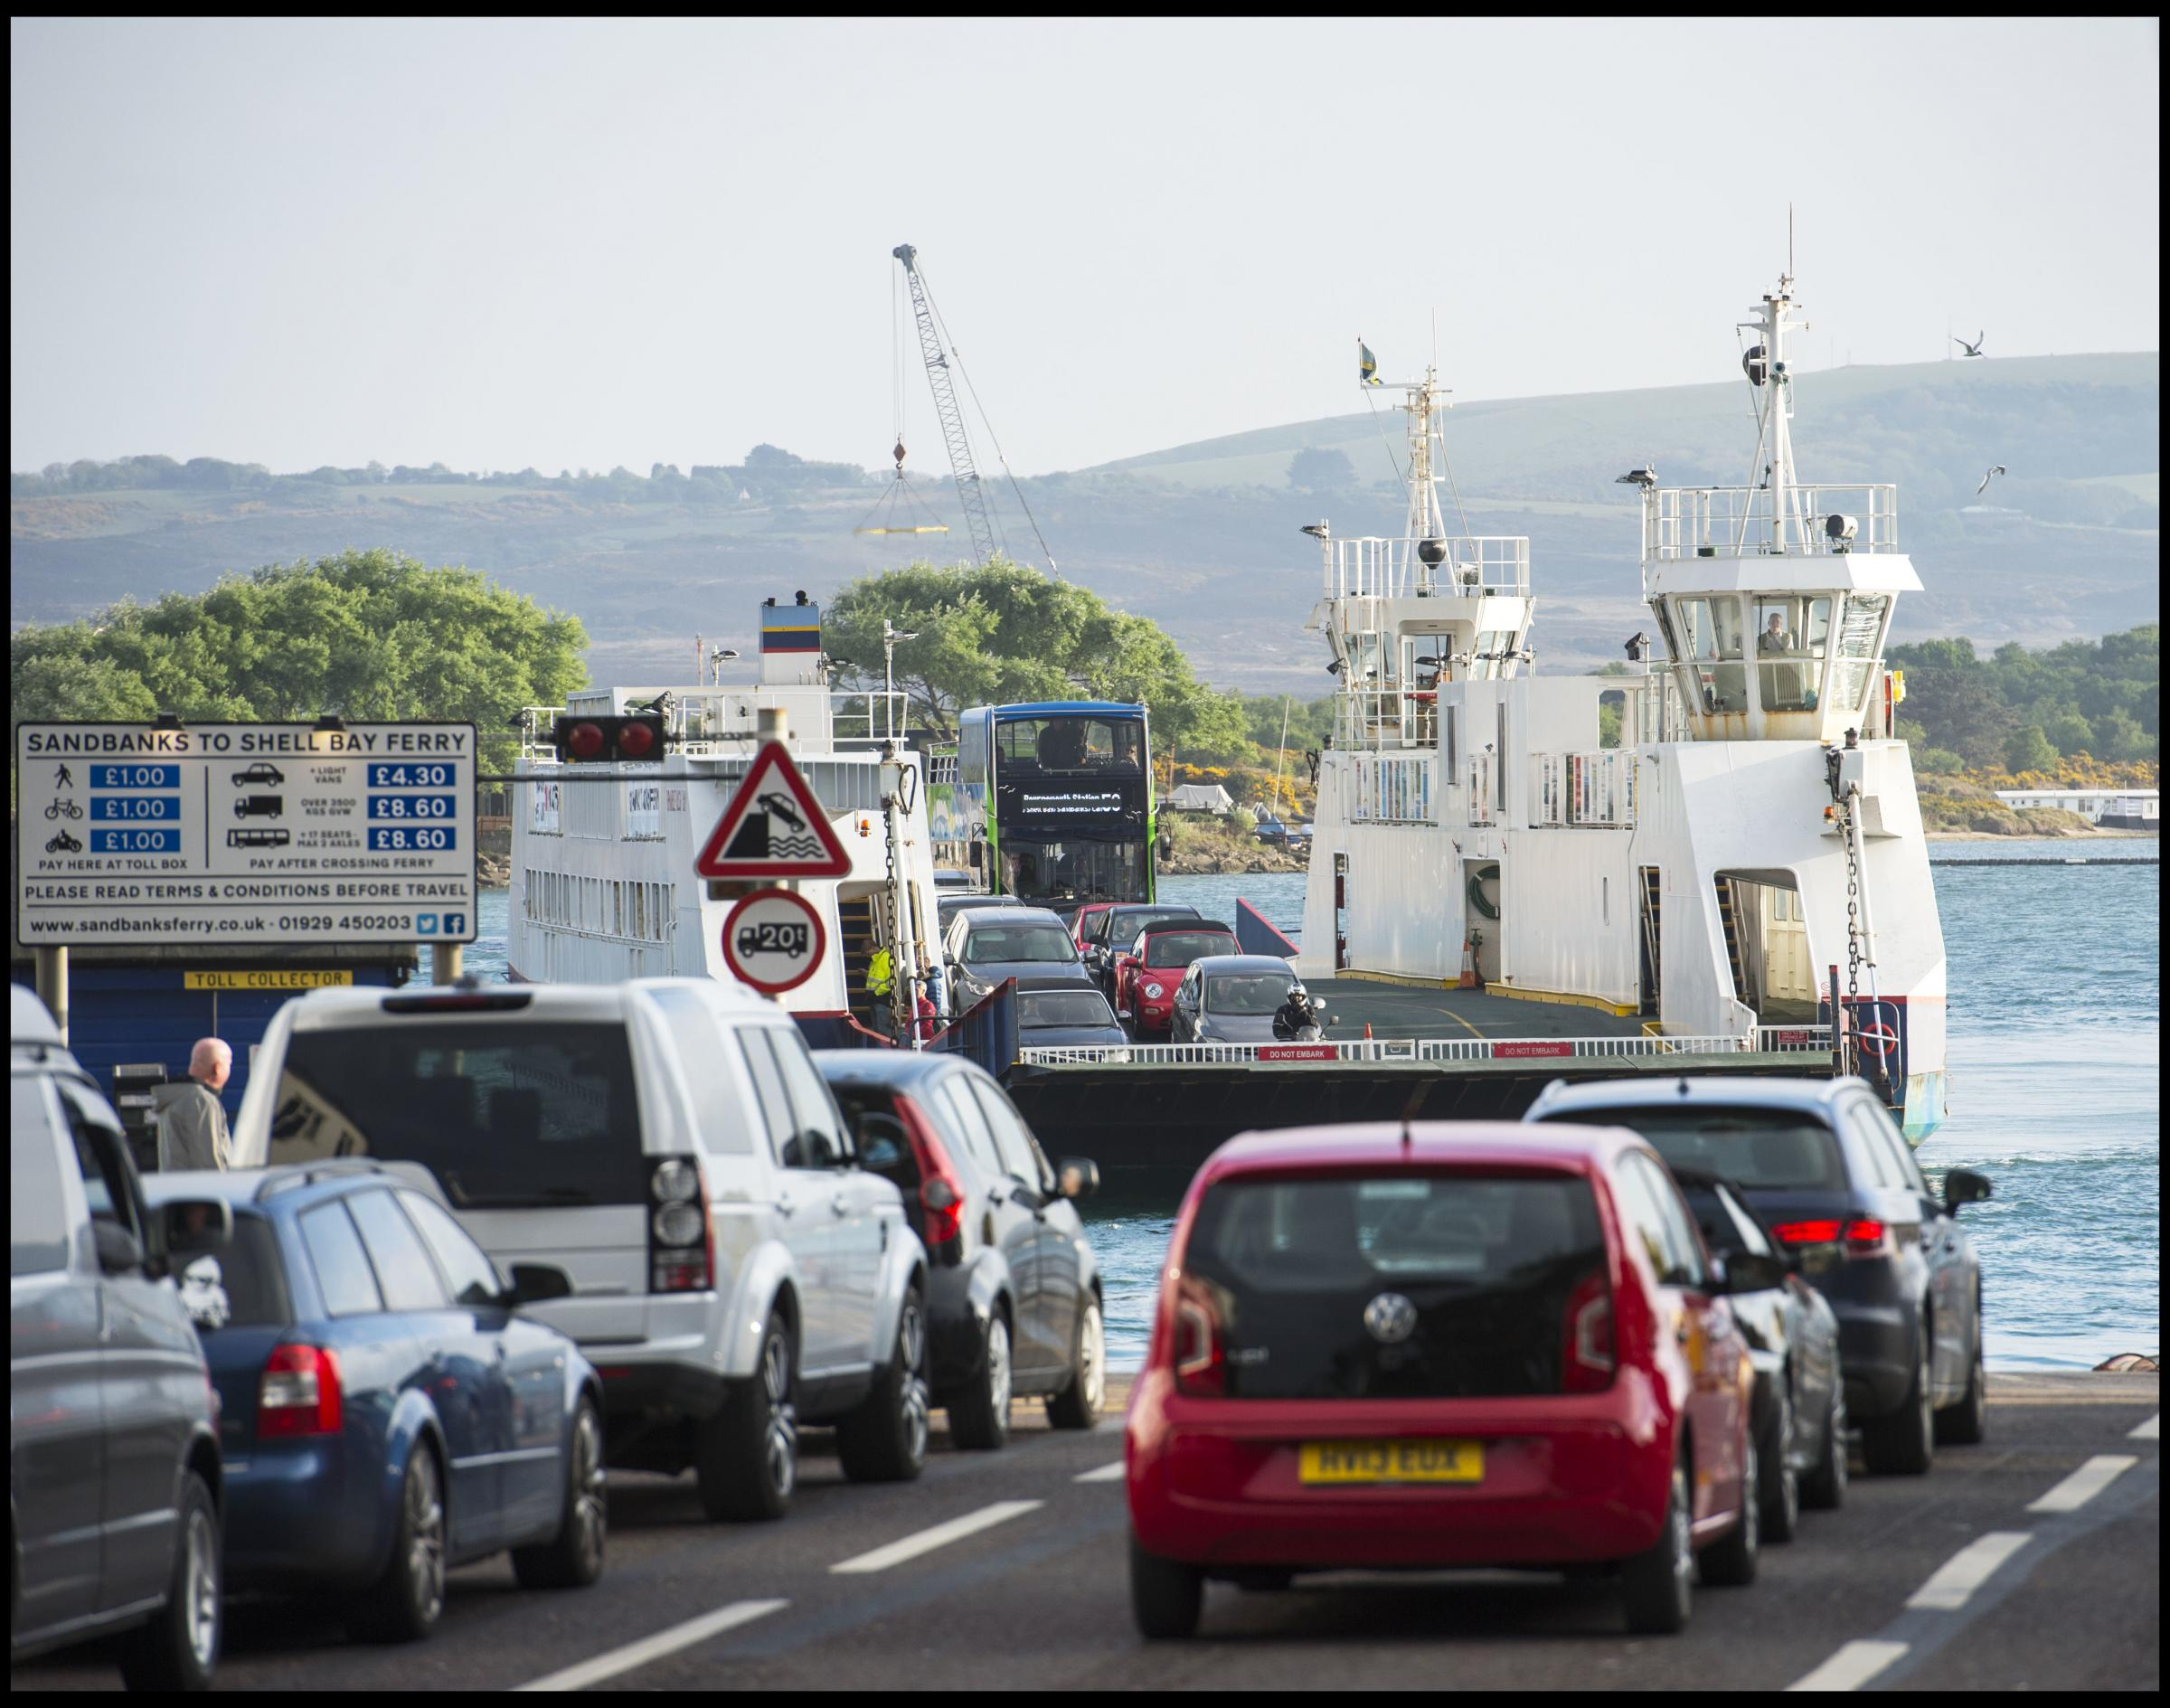 Chain ferry is on target for October reopening: Swanage ferry bosses say repair work is being completed